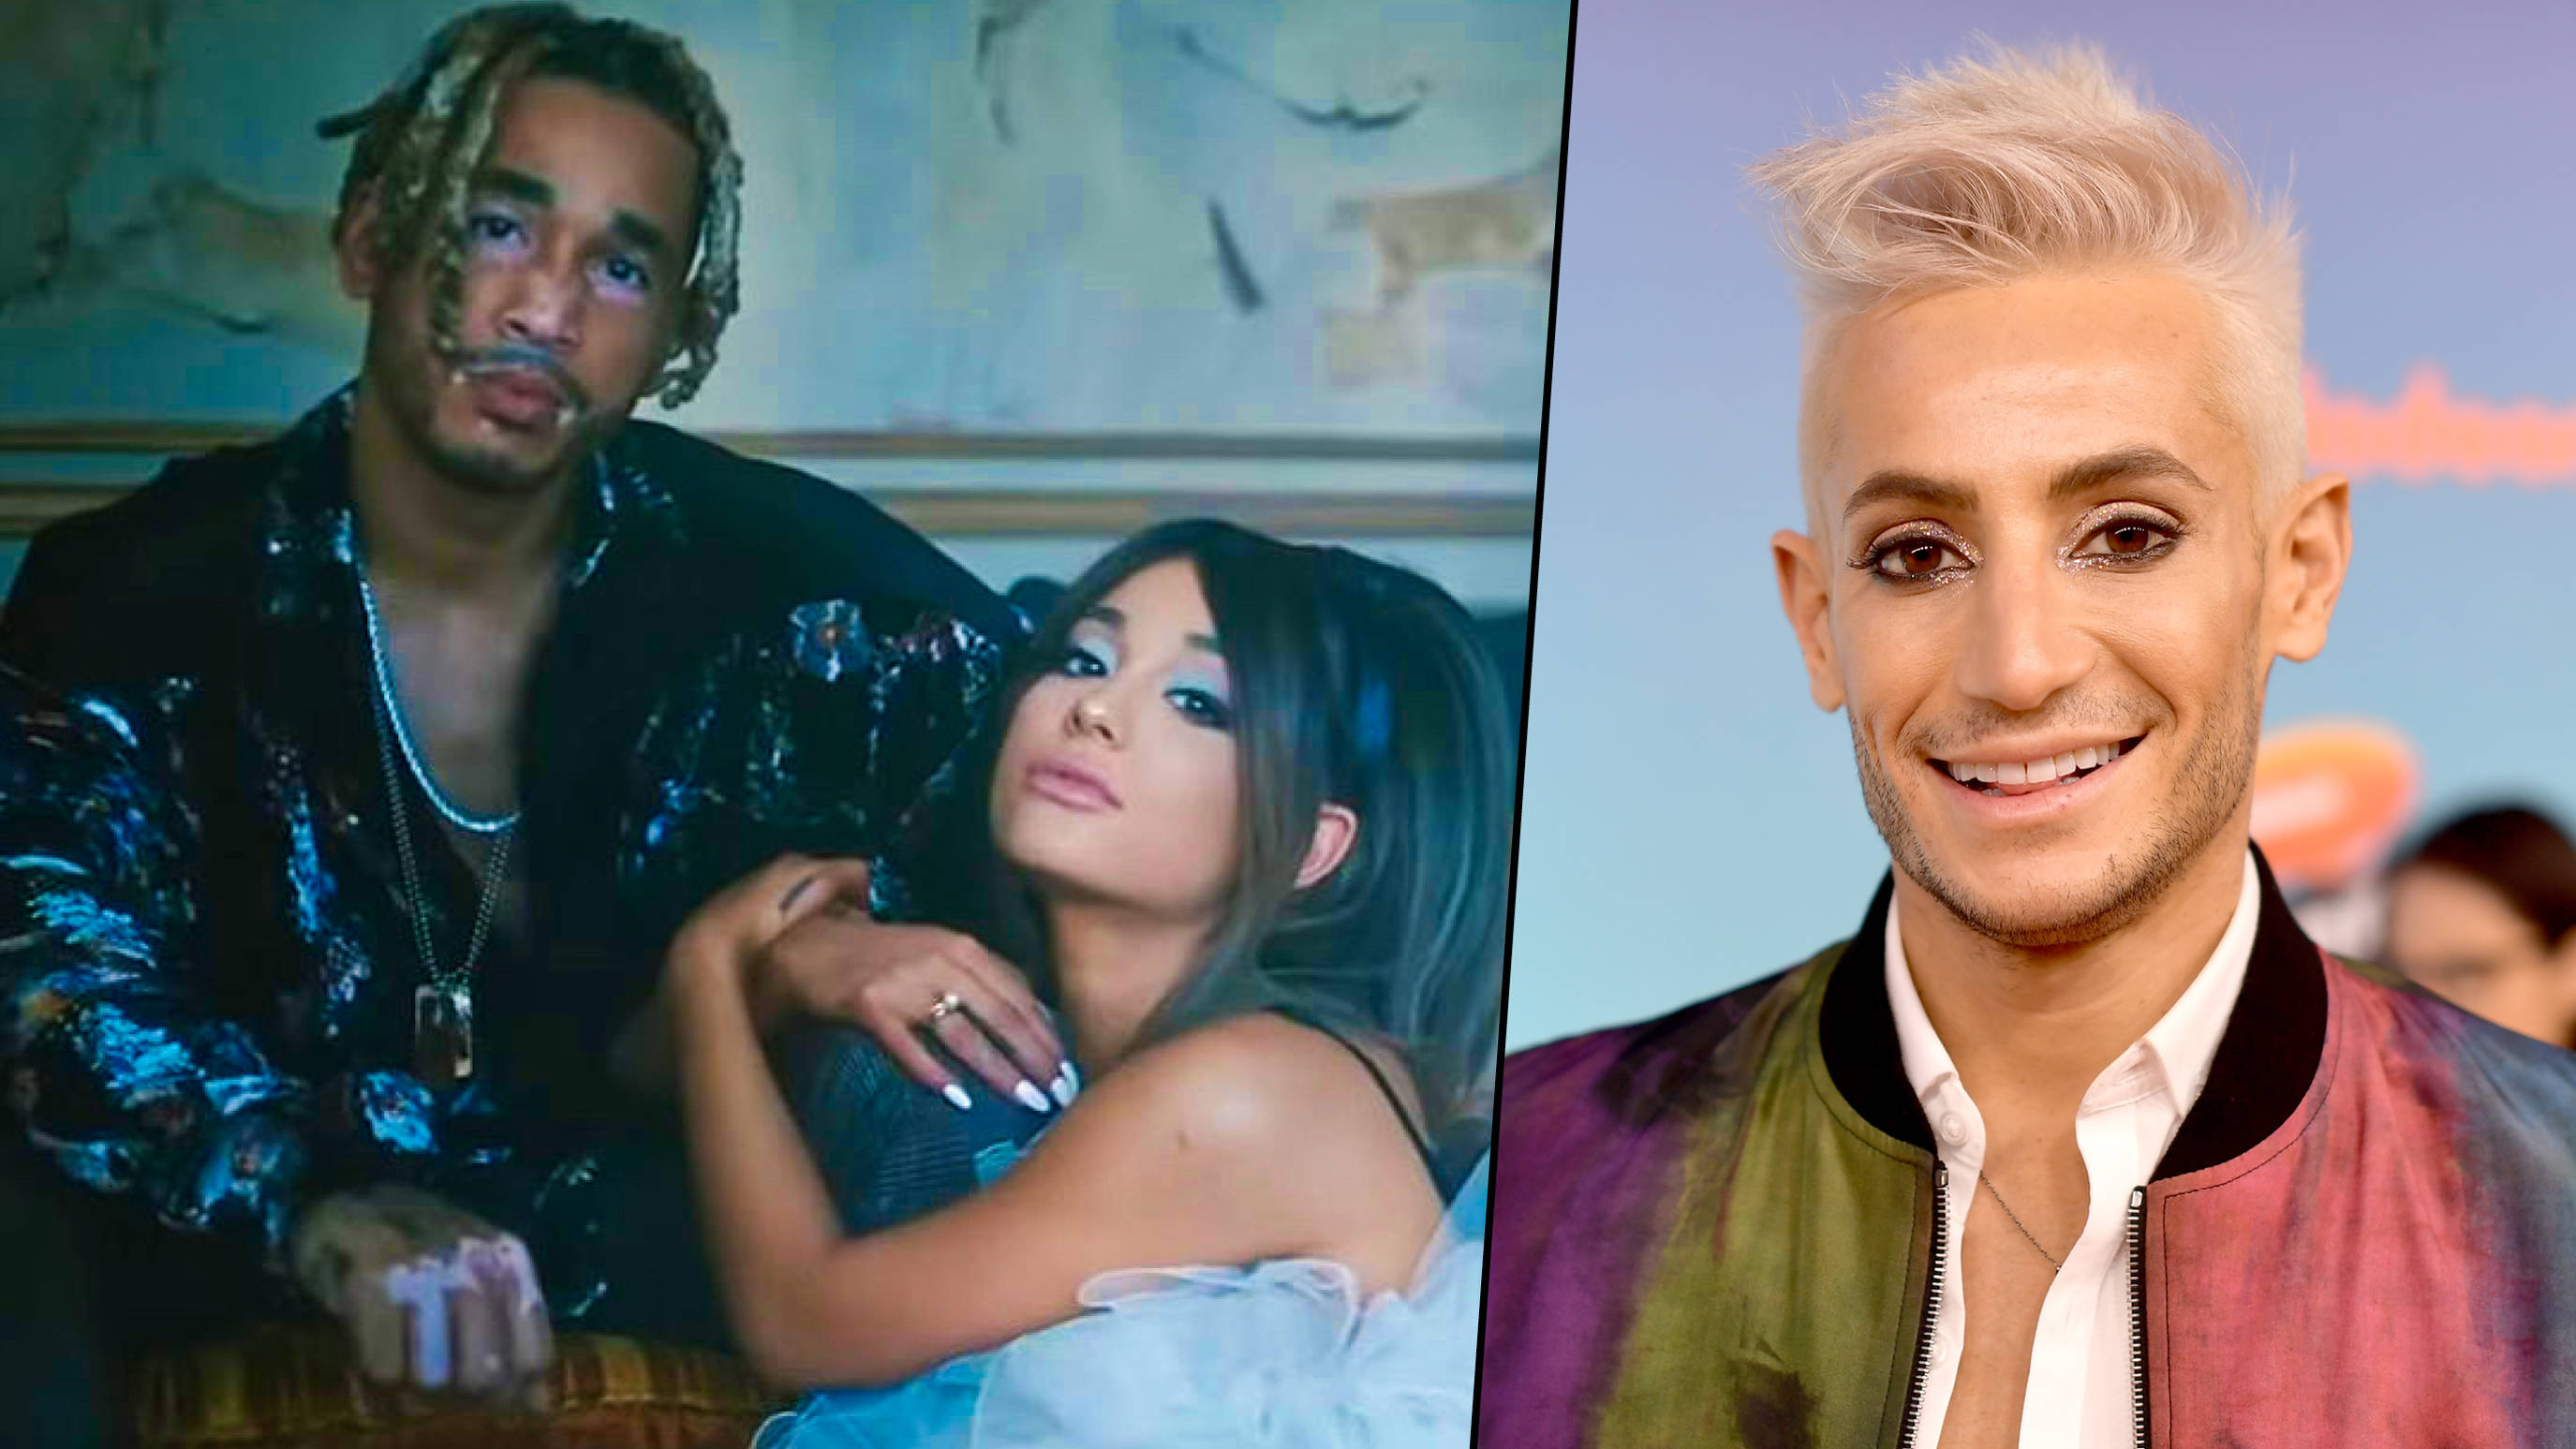 Frankie Grande shoots down rumours Ariana Grande is dating Mikey Foster